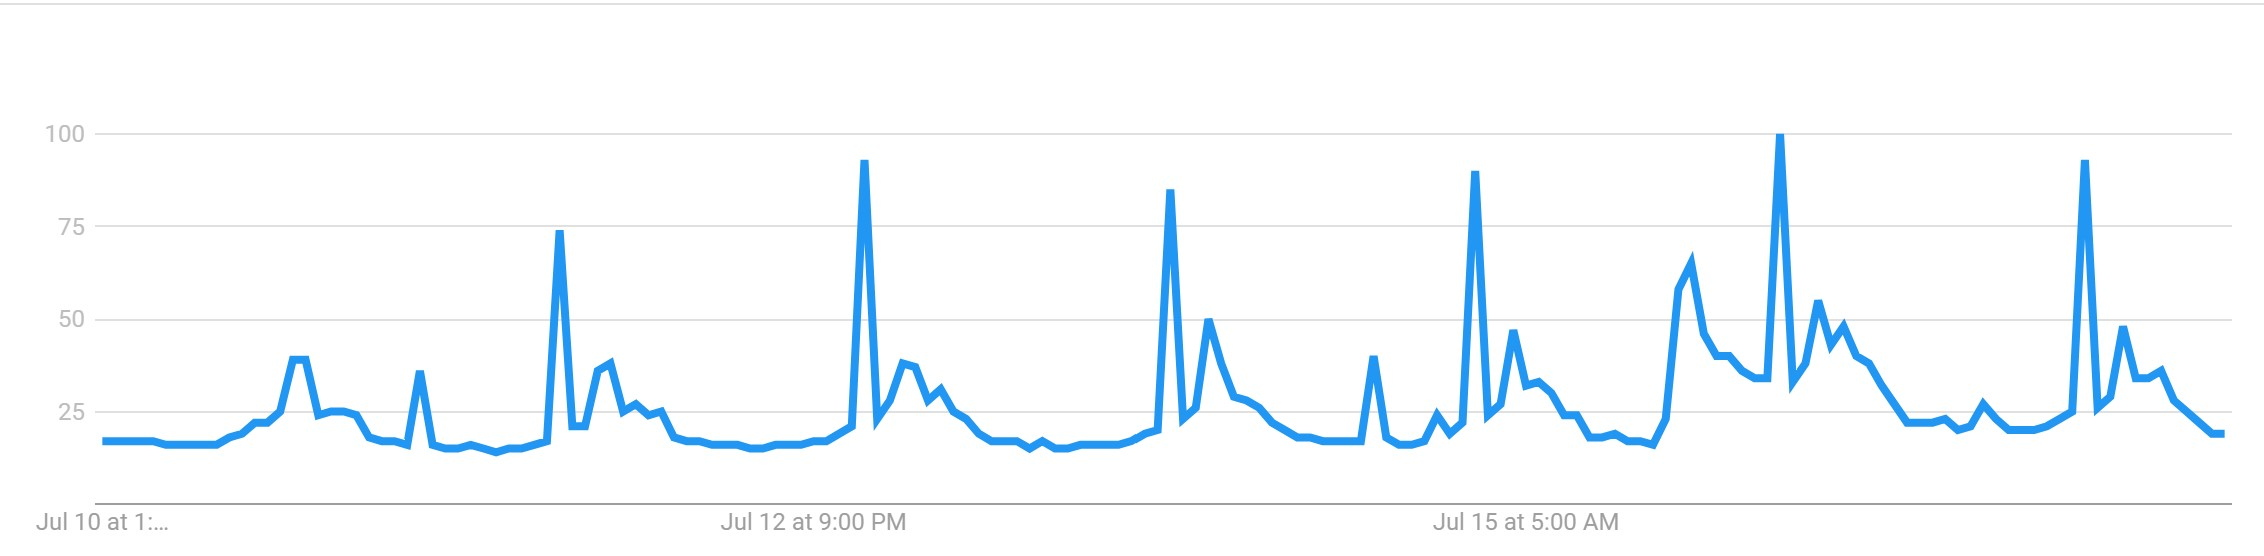 "The latest Google Trends data for ""Bitcoin"" searches. Source: Google Trends."